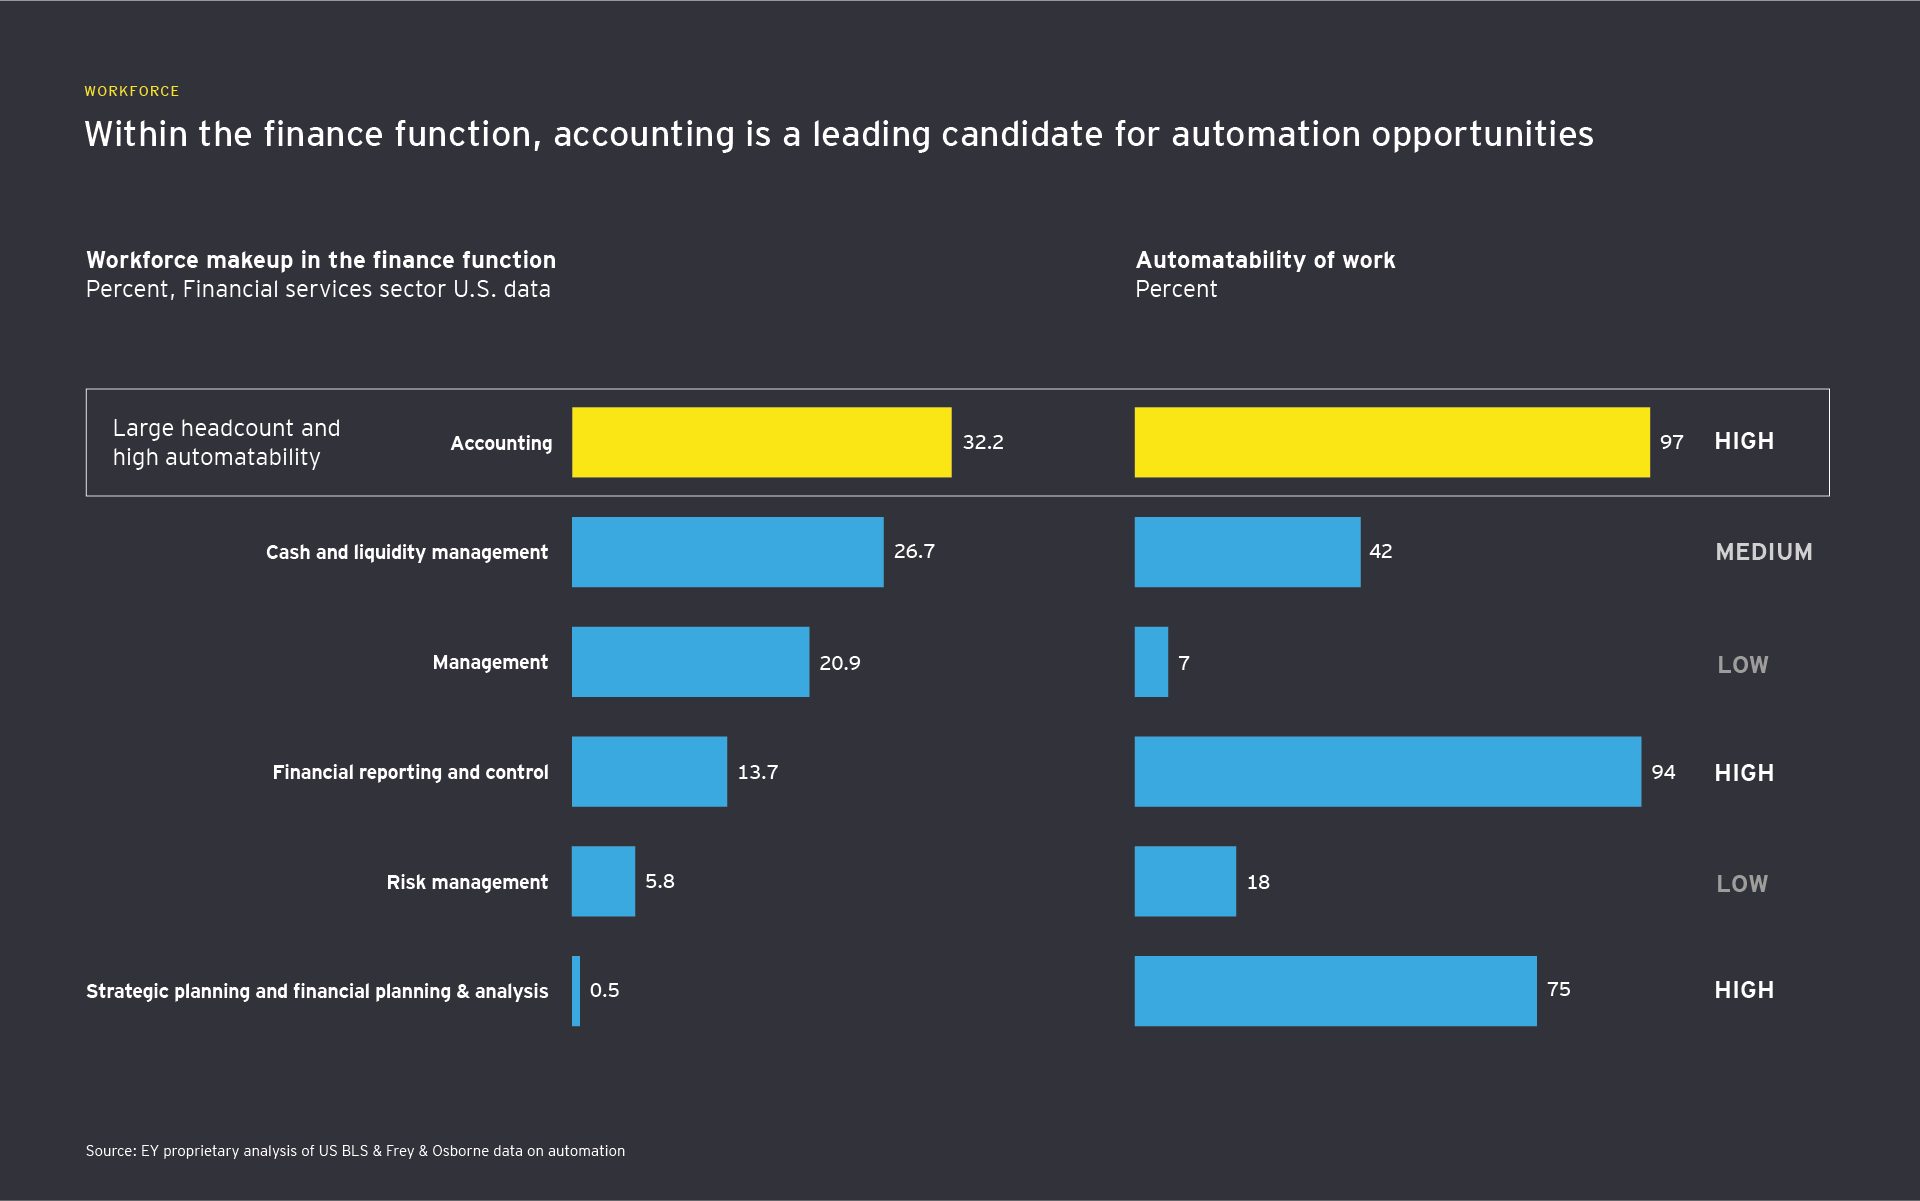 Automatability of occupations within the finance business function